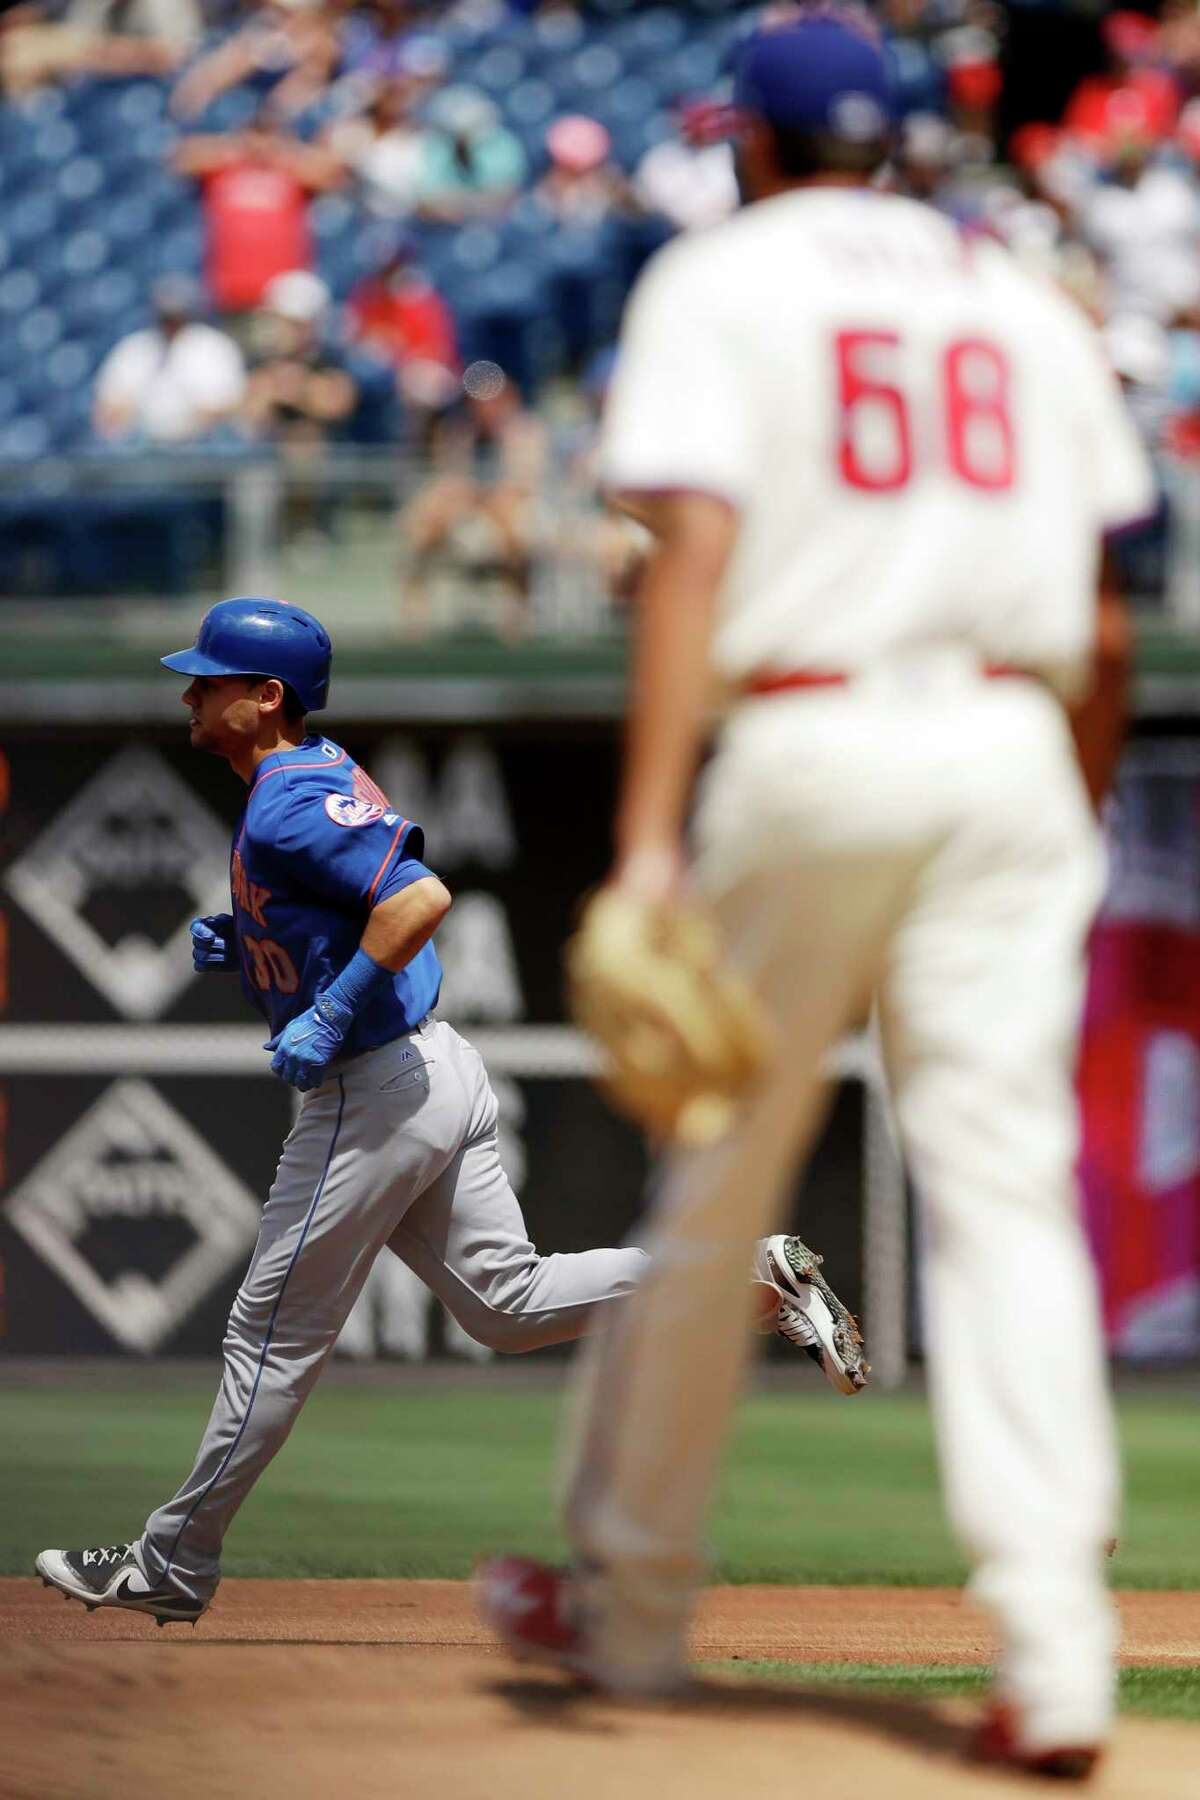 New York Mets' Michael Conforto, left, rounds the bases after hitting a two-run home run off Philadelphia Phillies starting pitcher Zach Eflin during the first inning of a baseball game, Sunday, Aug. 13, 2017, in Philadelphia. (AP Photo/Matt Slocum) ORG XMIT: PXS104